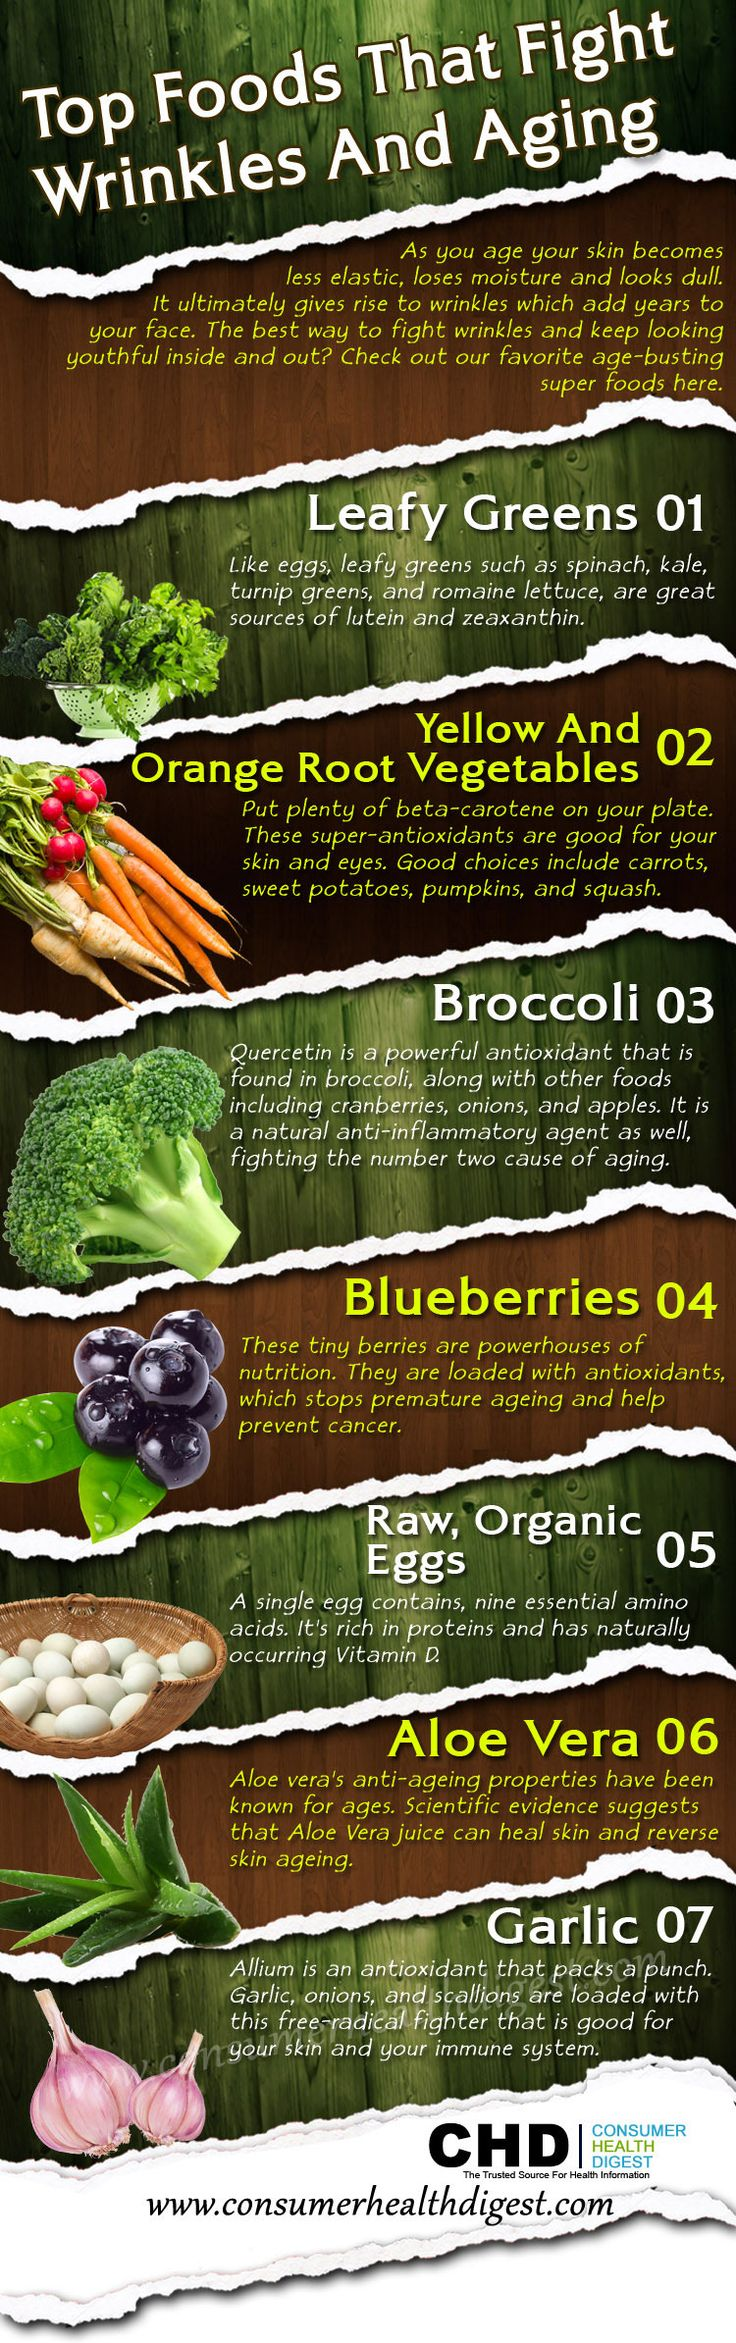 65 best anti aging food images on pinterest health healthy 5 tips to anti aging naturally top foods that fight wrinkles and aging and promote an overall healthy well being forumfinder Choice Image